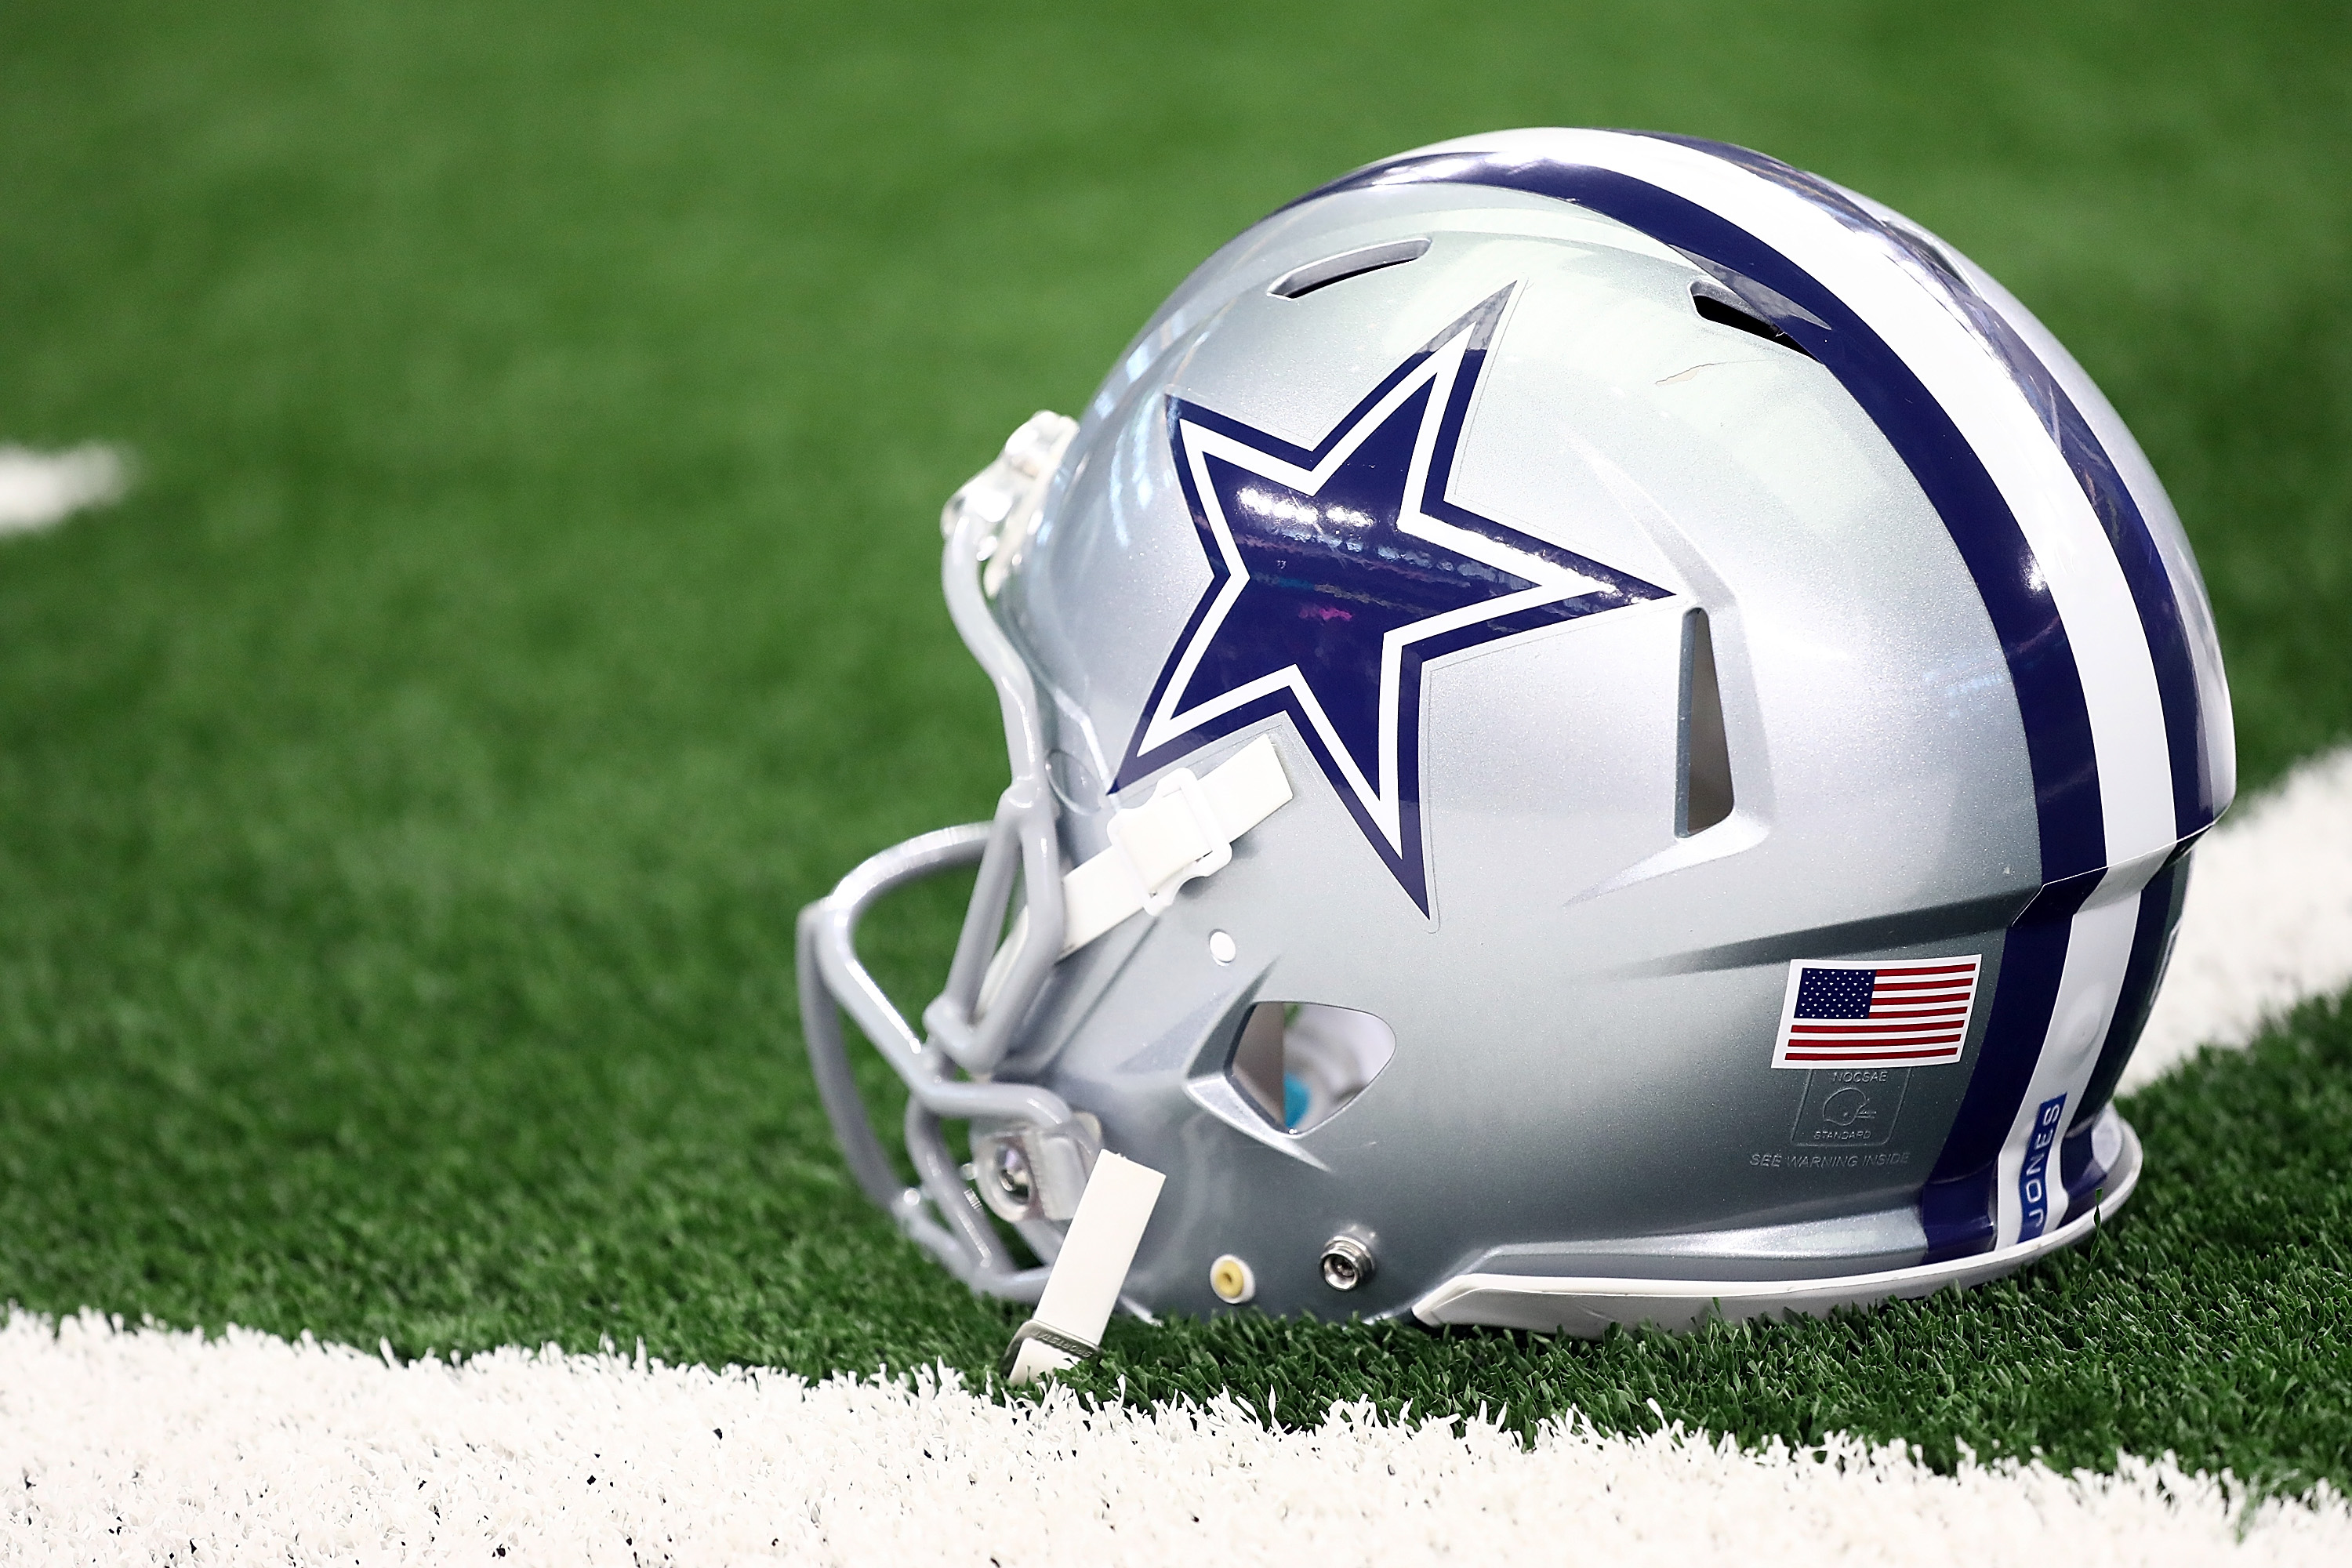 Automation is a winning strategy for the CFO of the Dallas Cowboys | Fortune